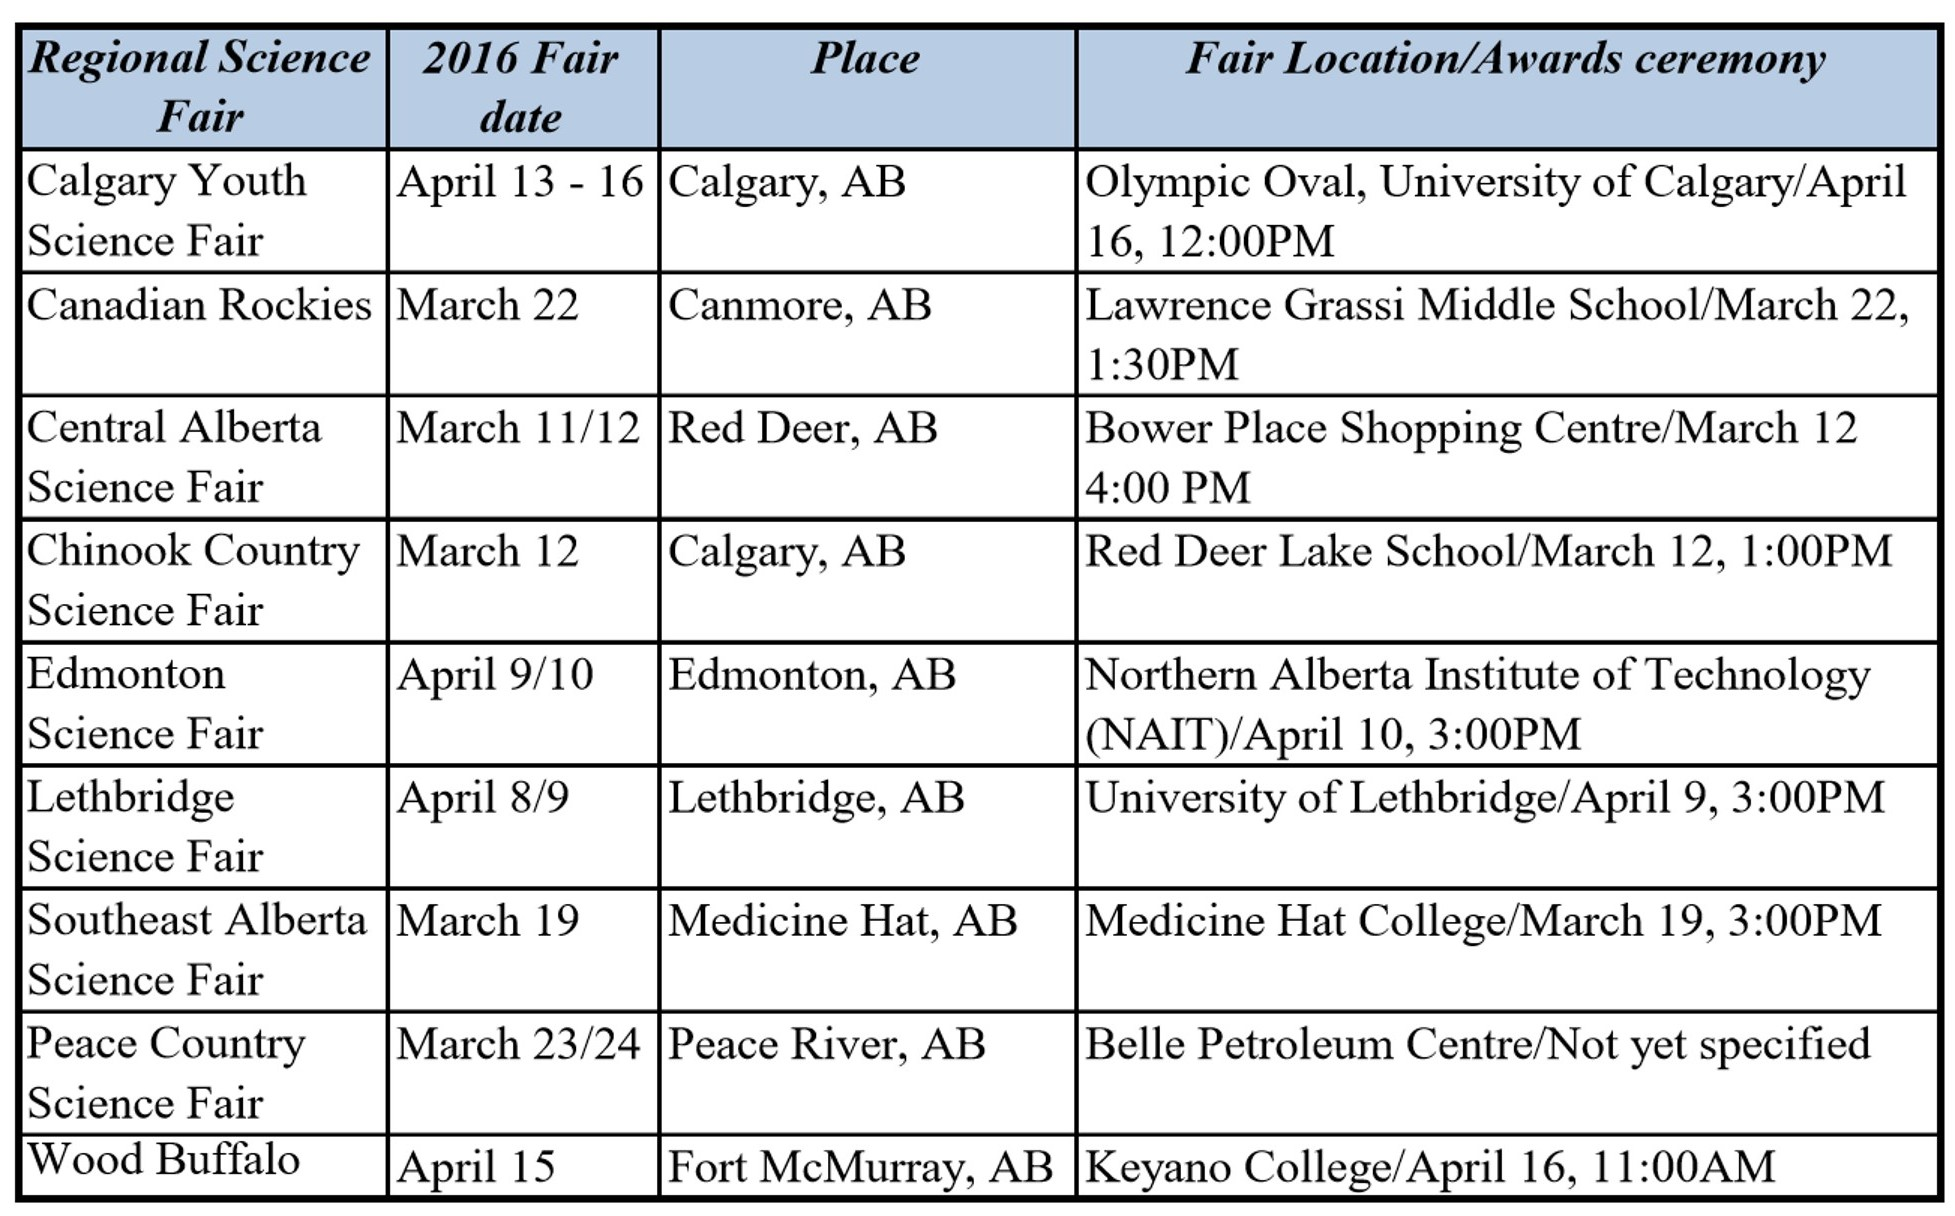 Image of a table chart of regional science fairs, their date, and location